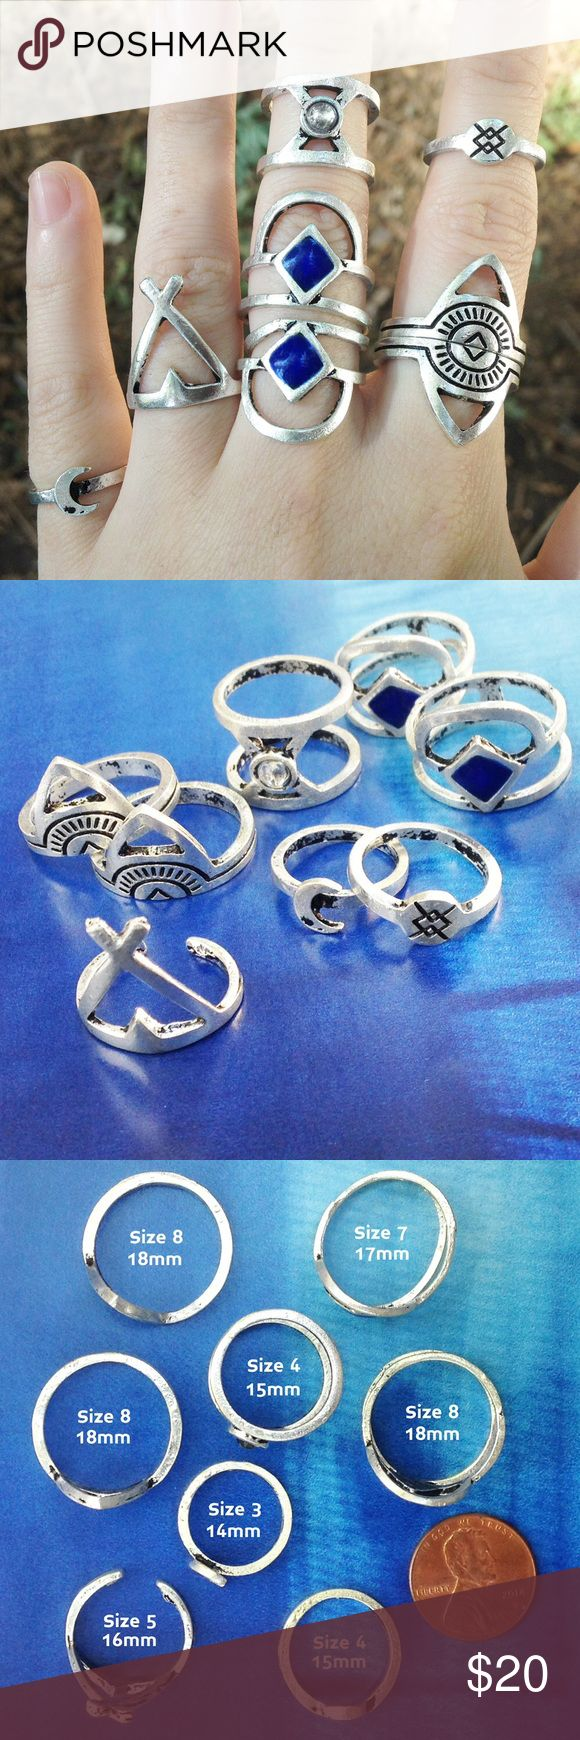 💥20% OFF💥 Boho Silver tone Rings (8) Chic!! 8 ring set in antique silver tone. Tribal inspired geometric designs. 1 ring has crescent moon charm. 1 ring has faux moonstone, double band. 2 rings have faux lapis blue enamel, double band. 3 rings have black etching. Sizes 3, 4, 5, 7, 8 as noted in photo 3. Brand new—this set is reduced in price due to one ring is bent (size 7, blue)—hardly noticeable when worn. Please review photos carefully sold as is. Each ring is beautiful on its own with…